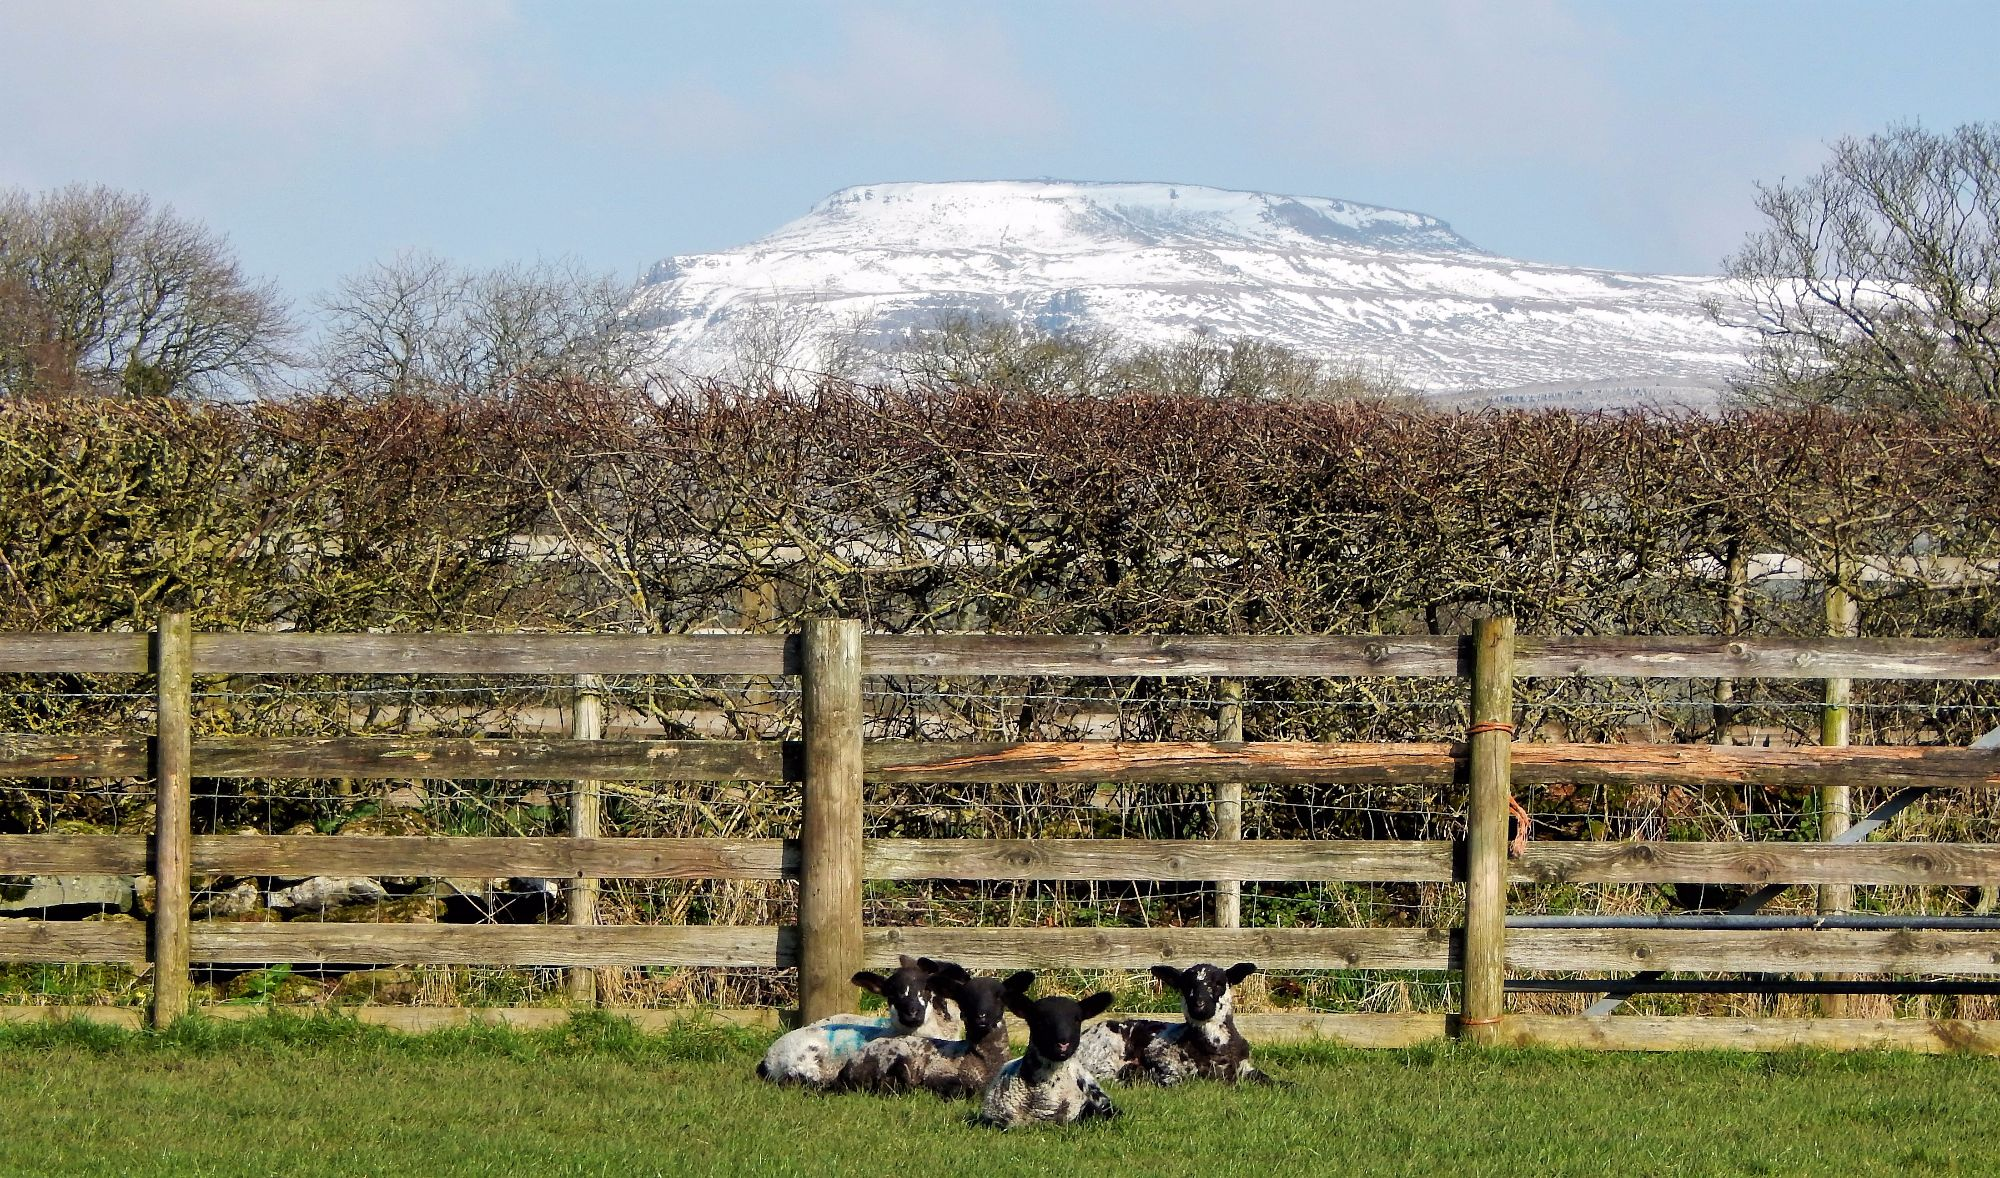 Spring Snow and Spring Lambs at Thornbrook Barn